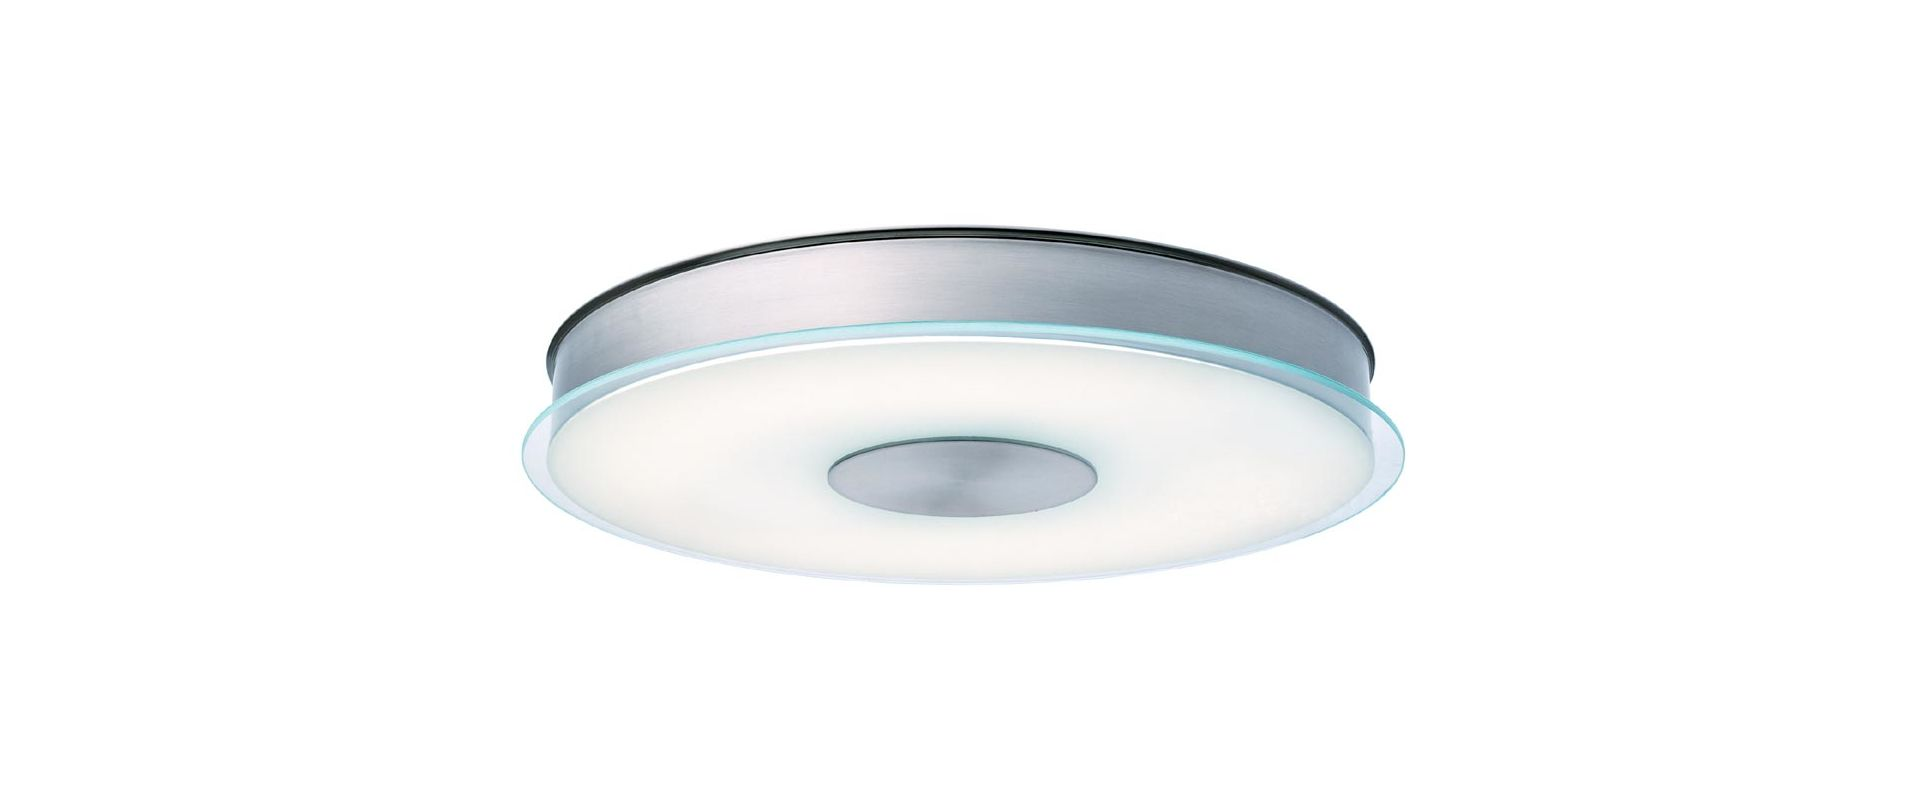 "Lithonia Lighting 11562 Disk 14.5"" ADA Compliant Flush Mount Energy"